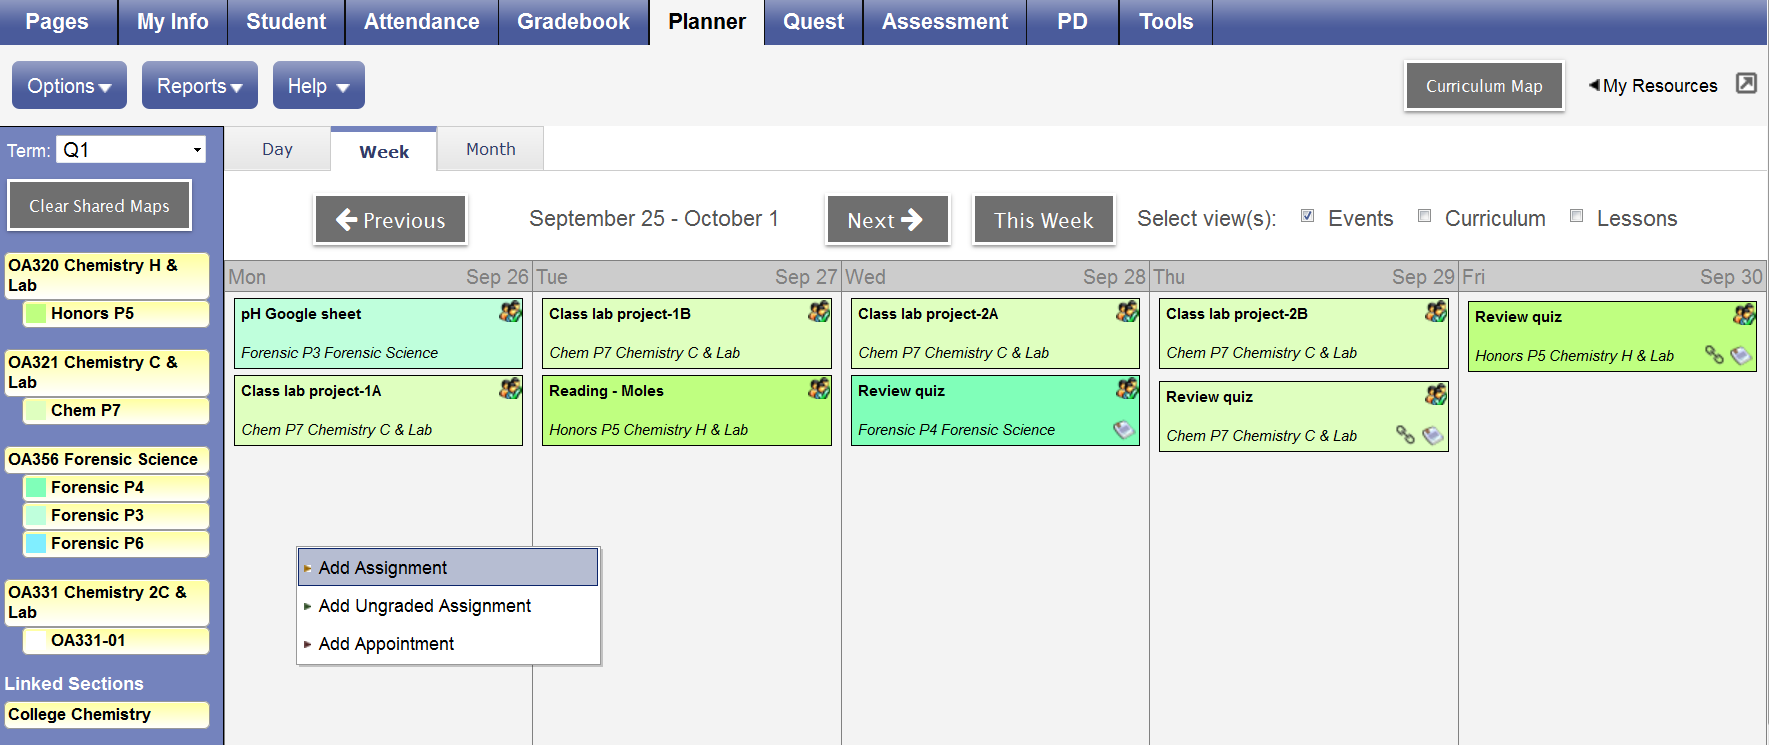 add and edit assignments in the planner